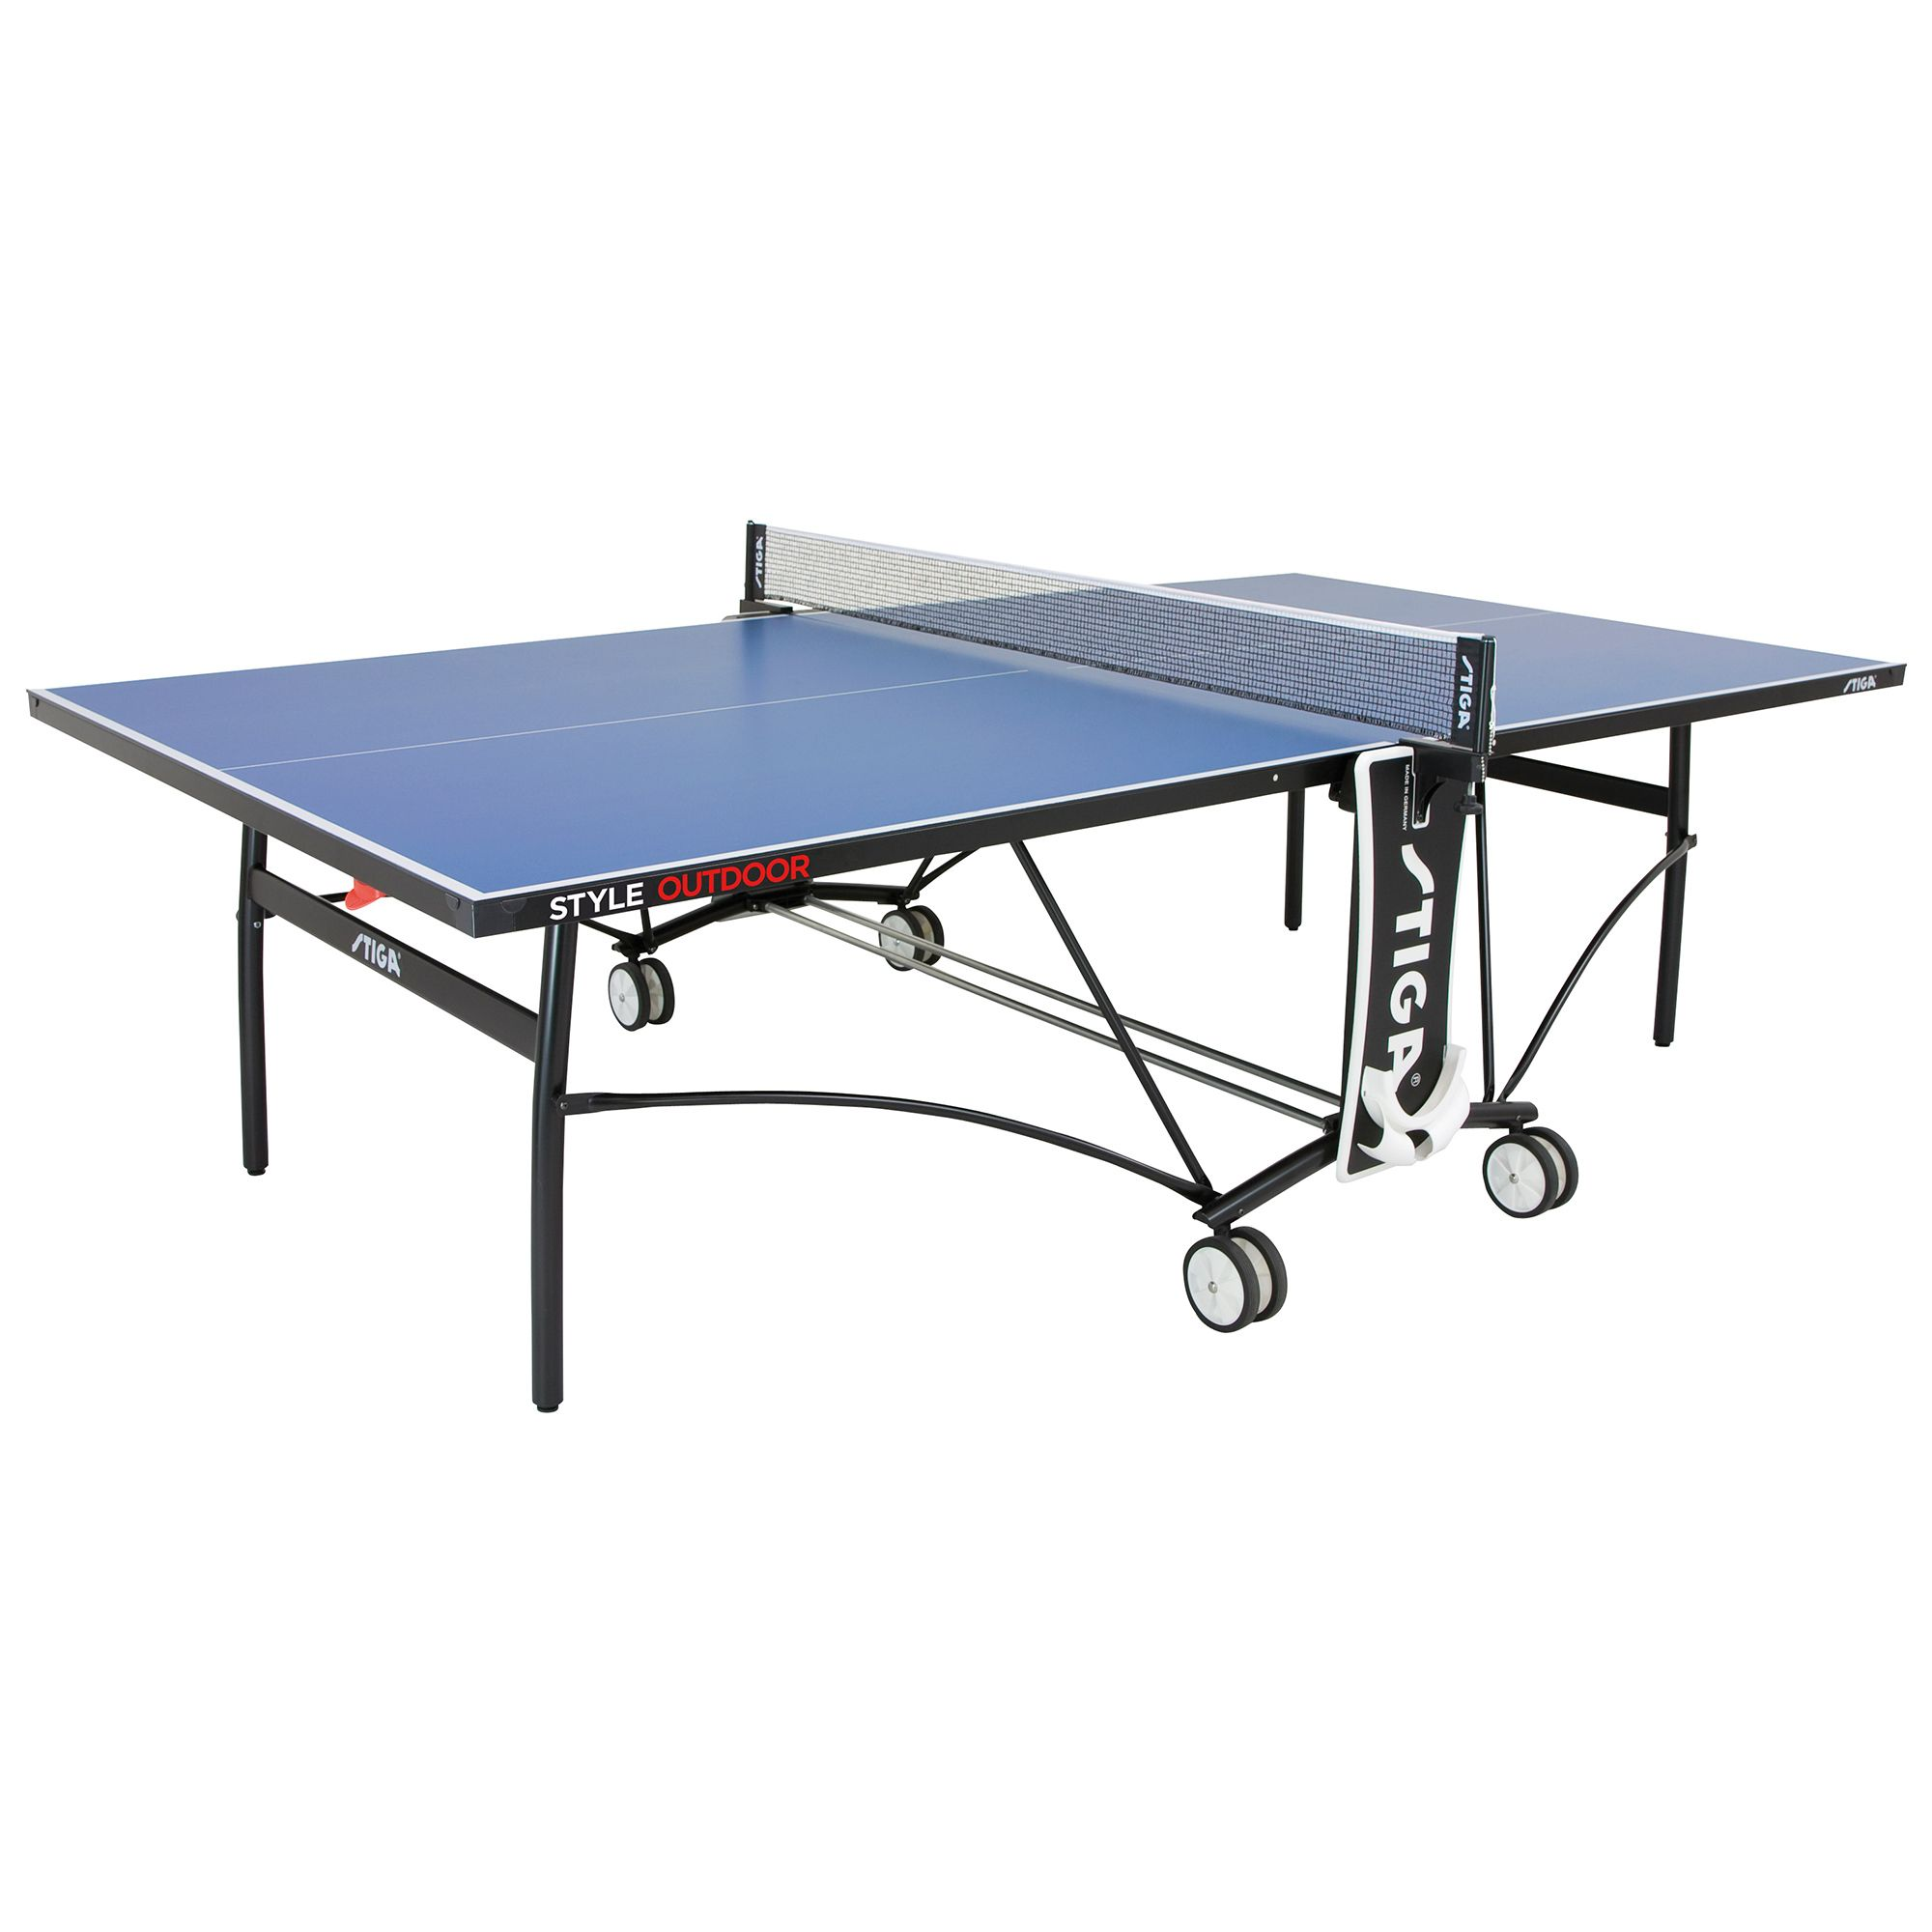 Stiga style outdoor table tennis table - Weatherproof table tennis table ...